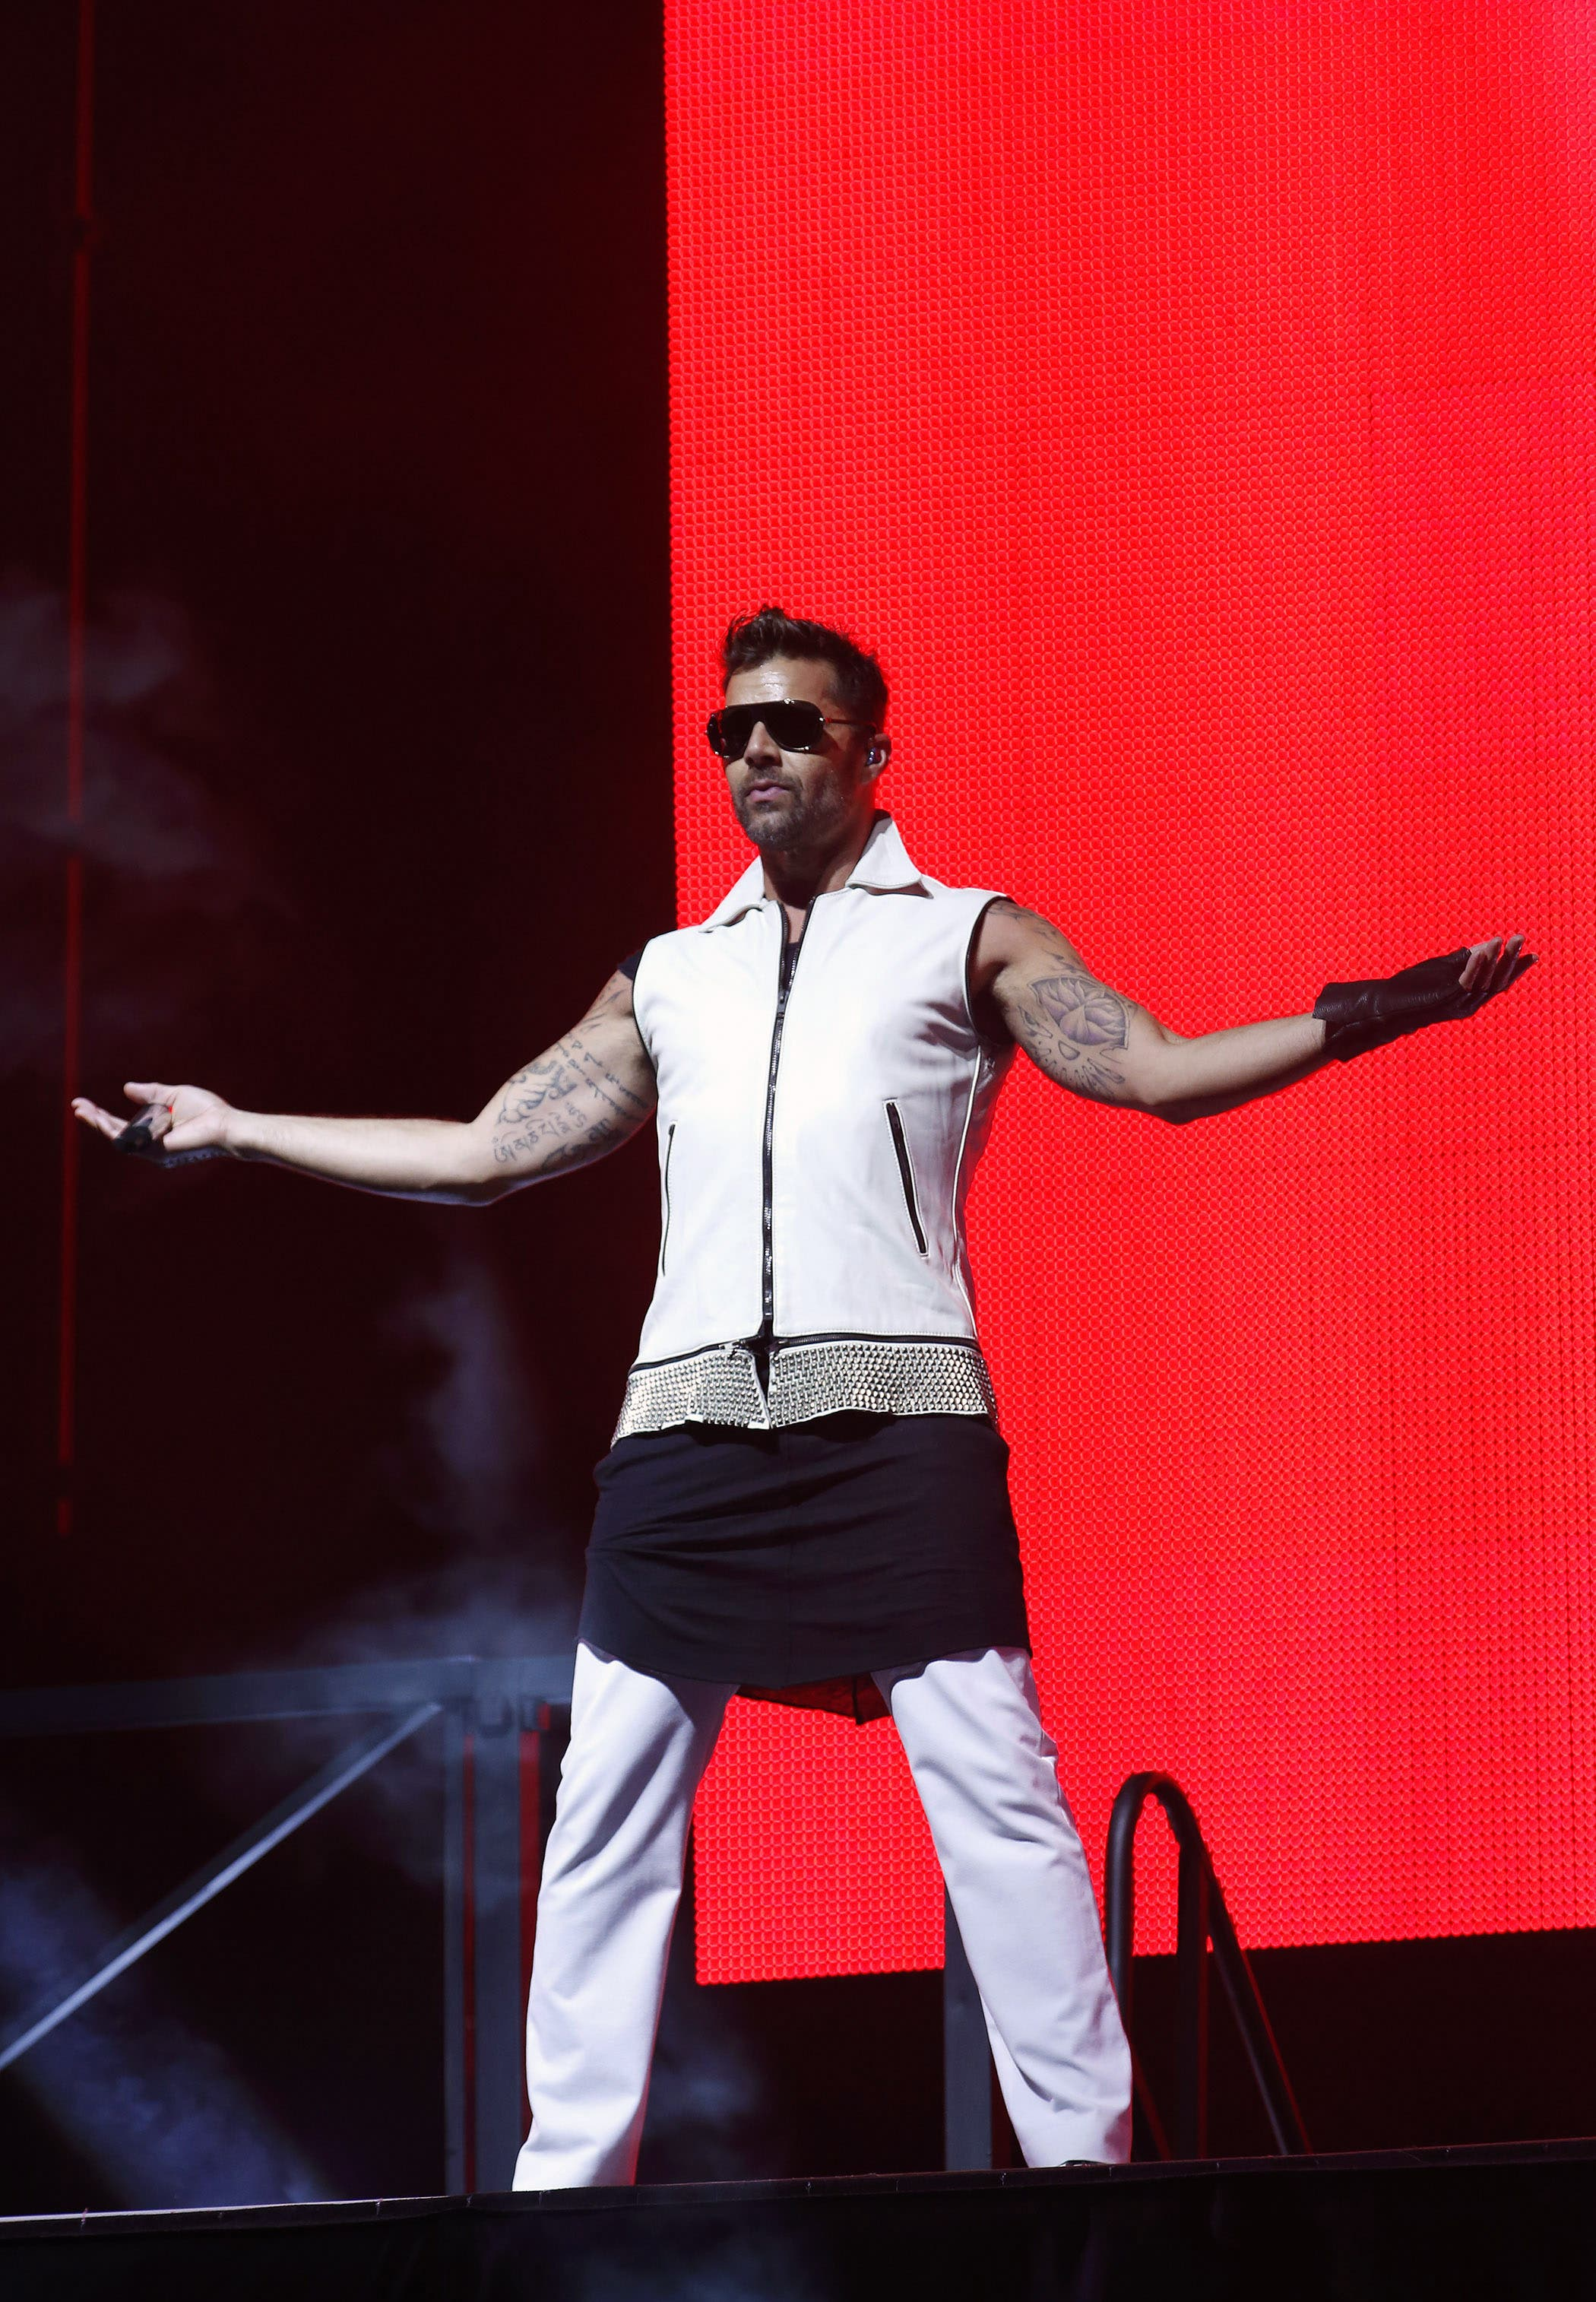 Ricky Martin performs in Morocco